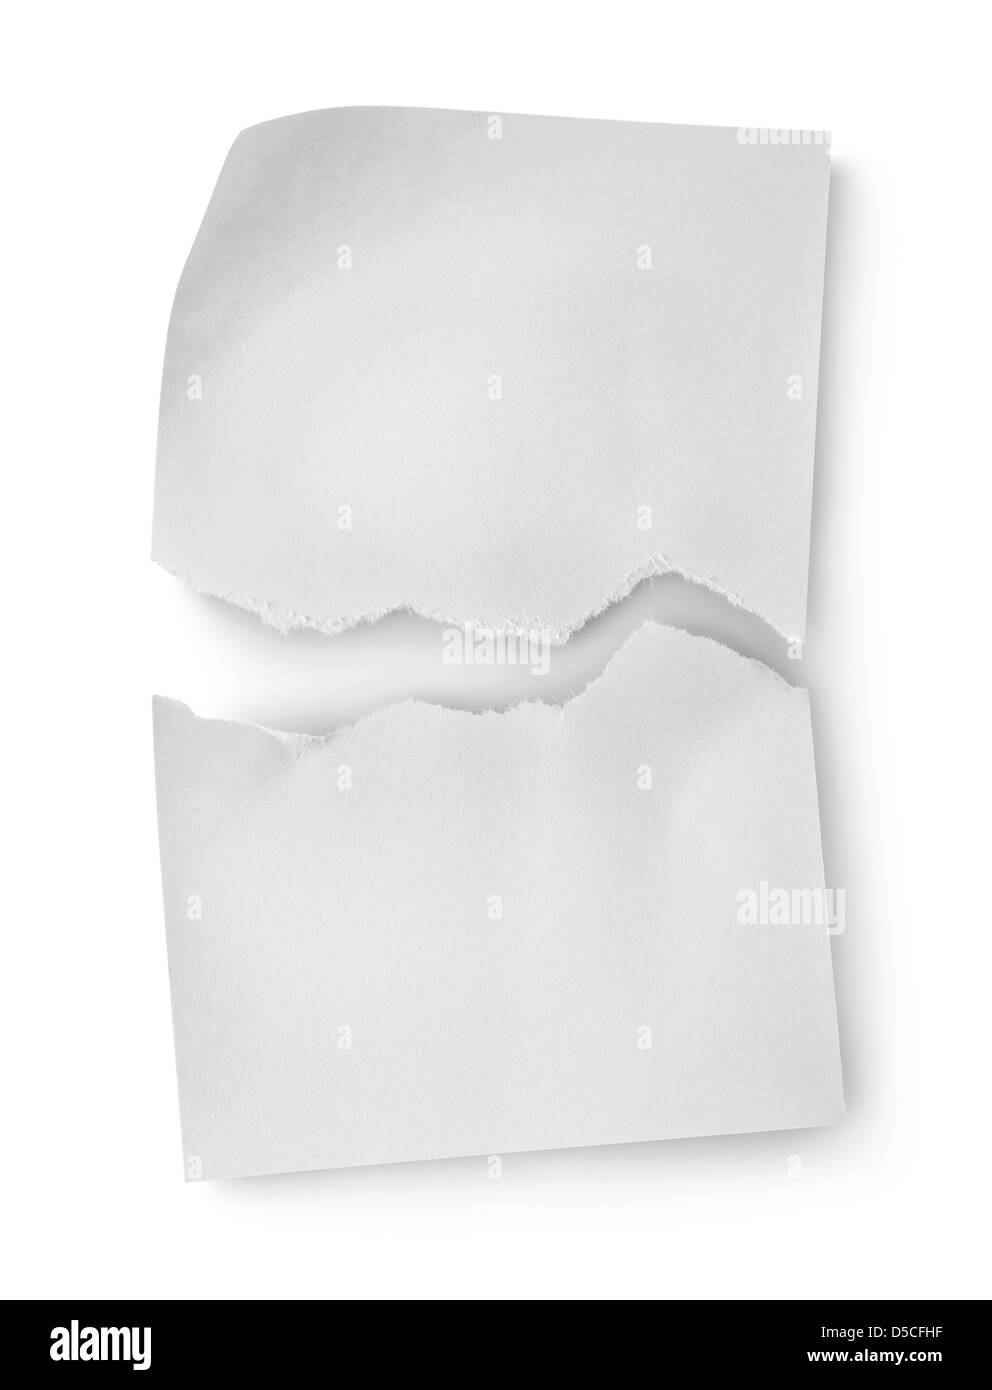 Sheet of white paper isolated on white background - Stock Image